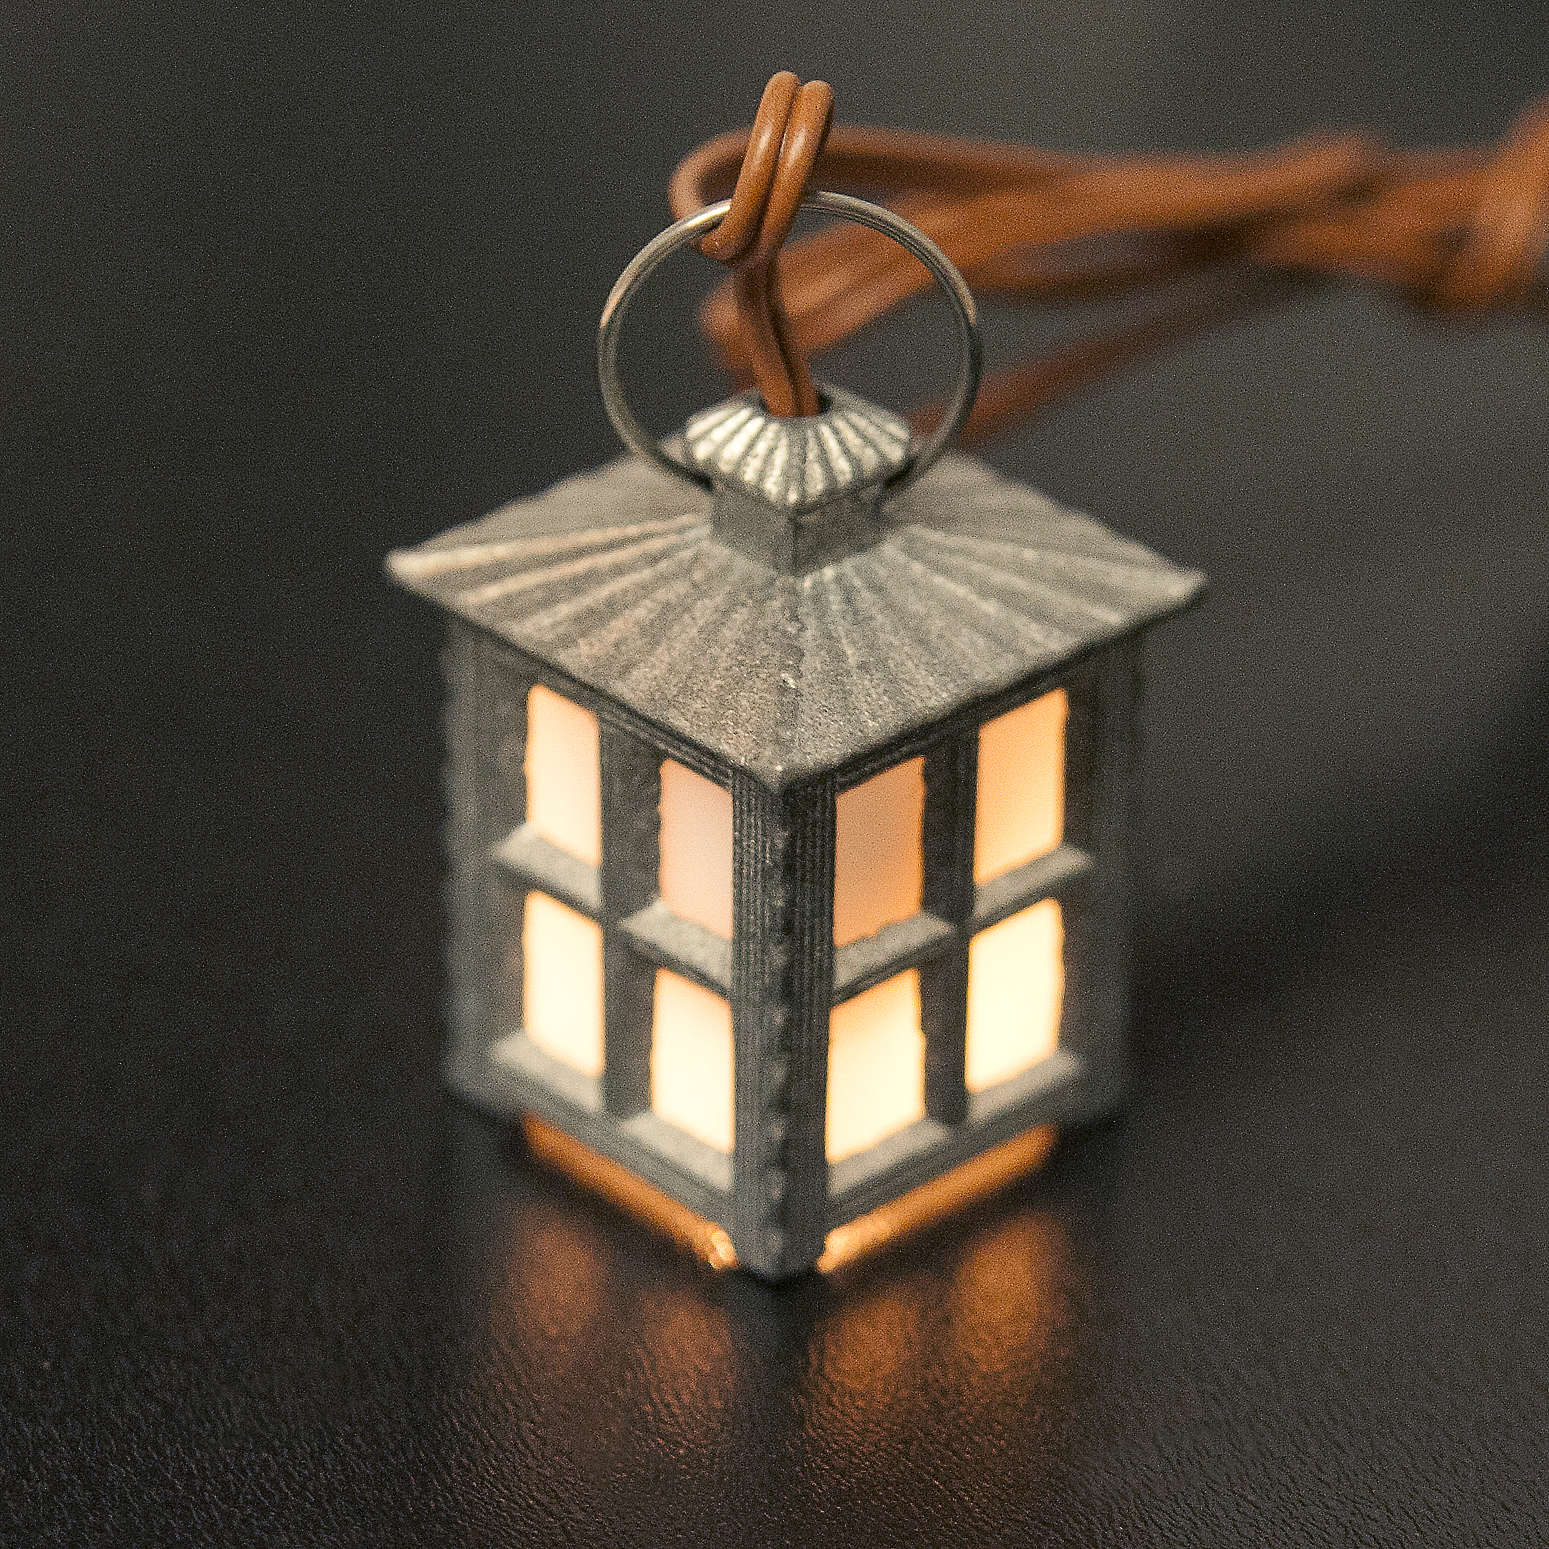 Nativity accessory, metal lamp with white light, 2.5cm 4